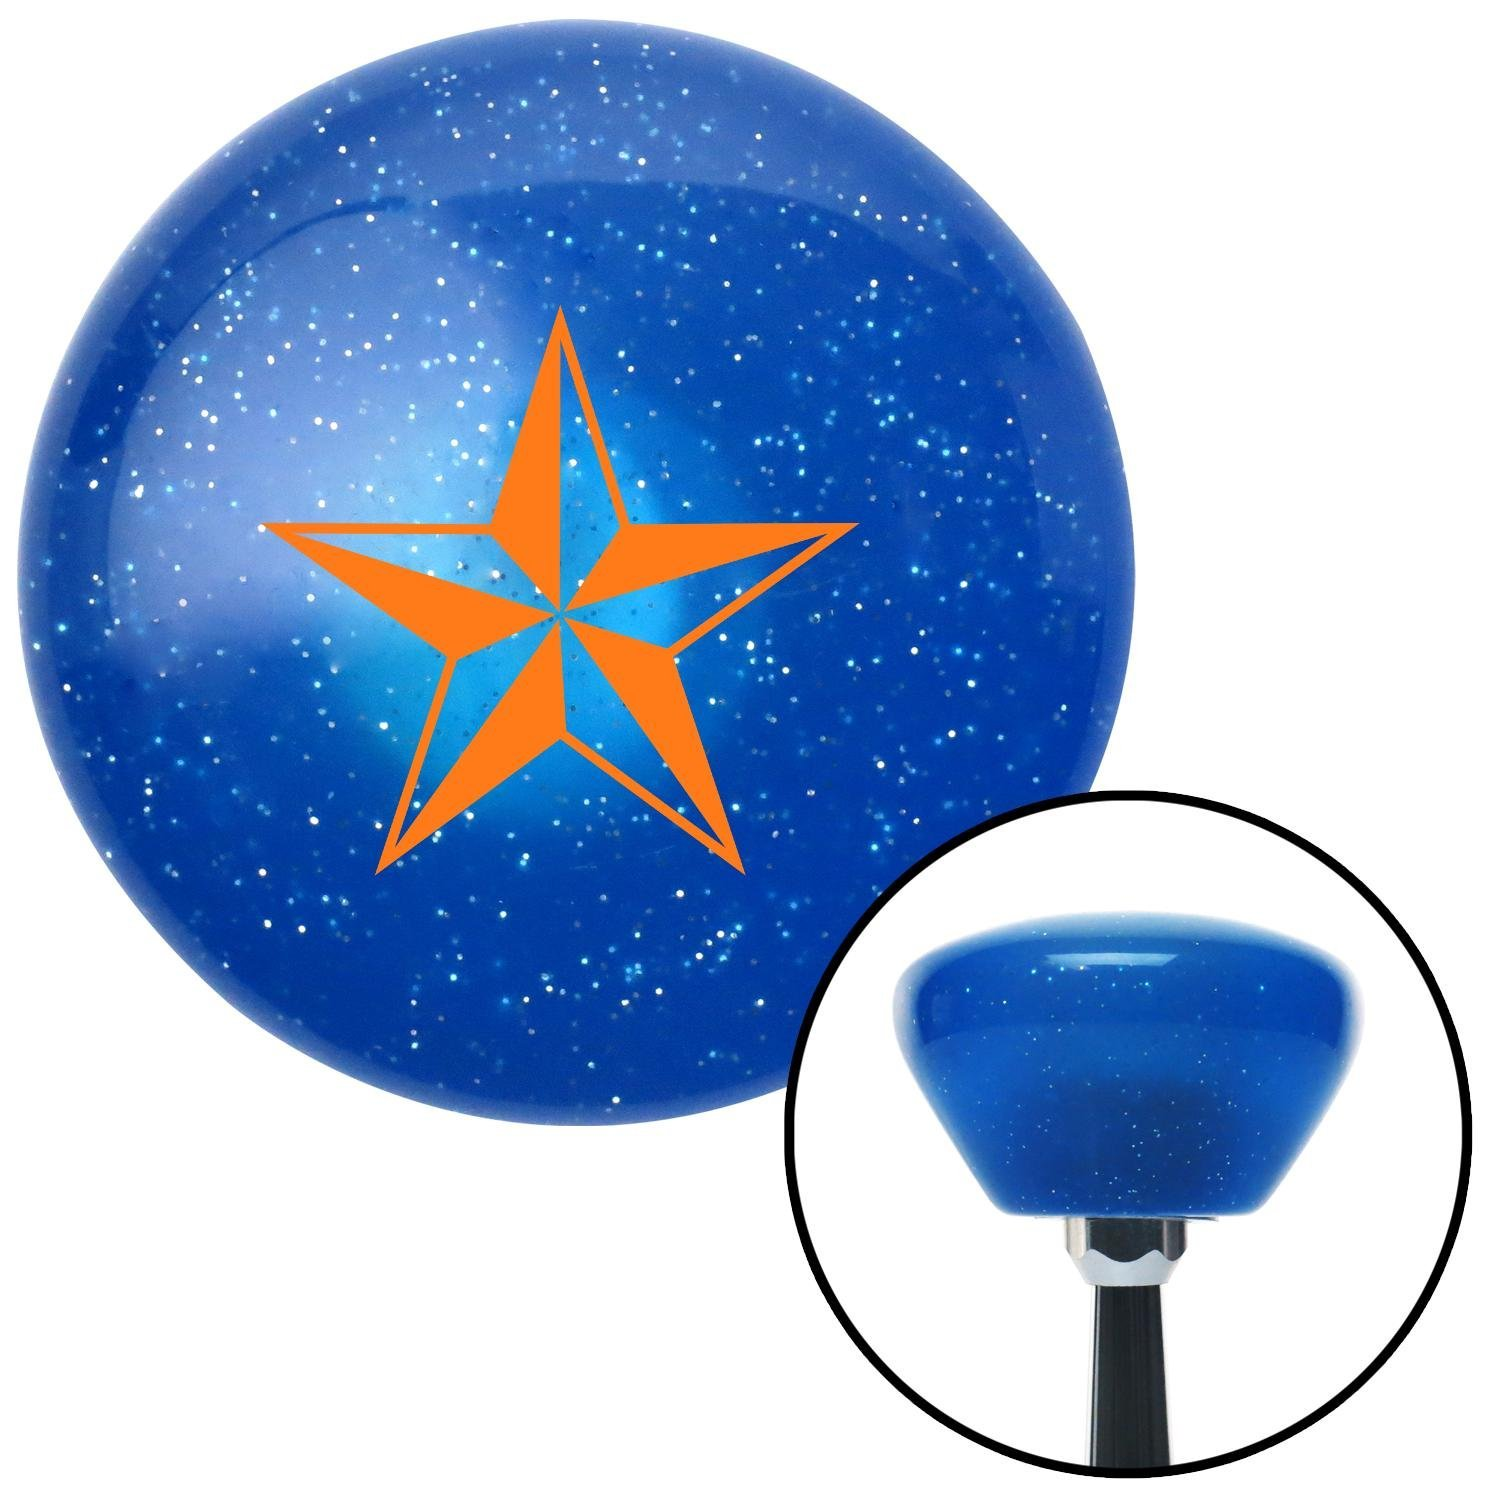 Orange 5 Point 3-D Star American Shifter 188294 Blue Retro Metal Flake Shift Knob with M16 x 1.5 Insert